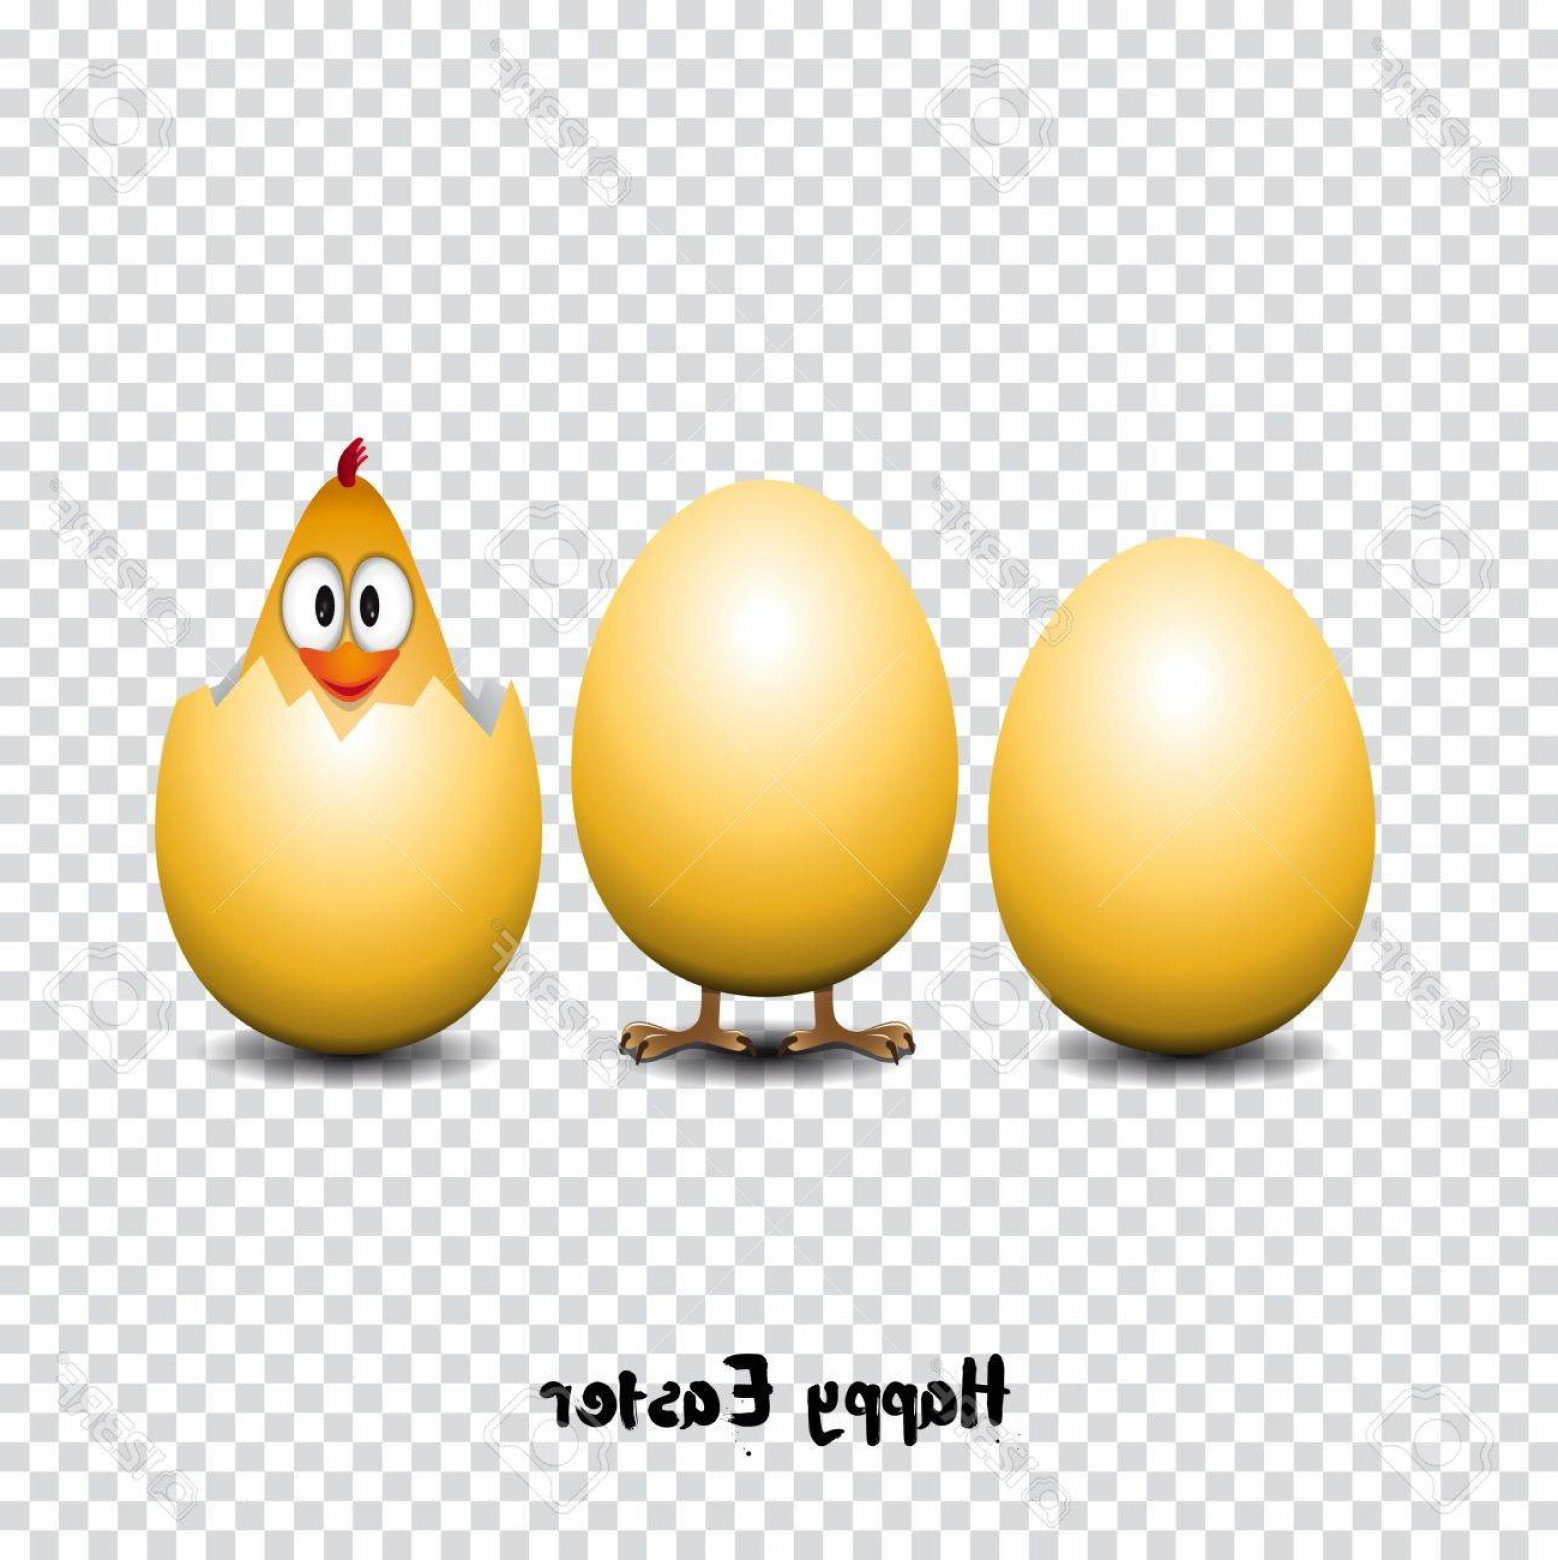 Easter Vector No Background: Photostock Vector Happy Easter Card Funny Chicken Eggs Transparent Background Vector Illustration